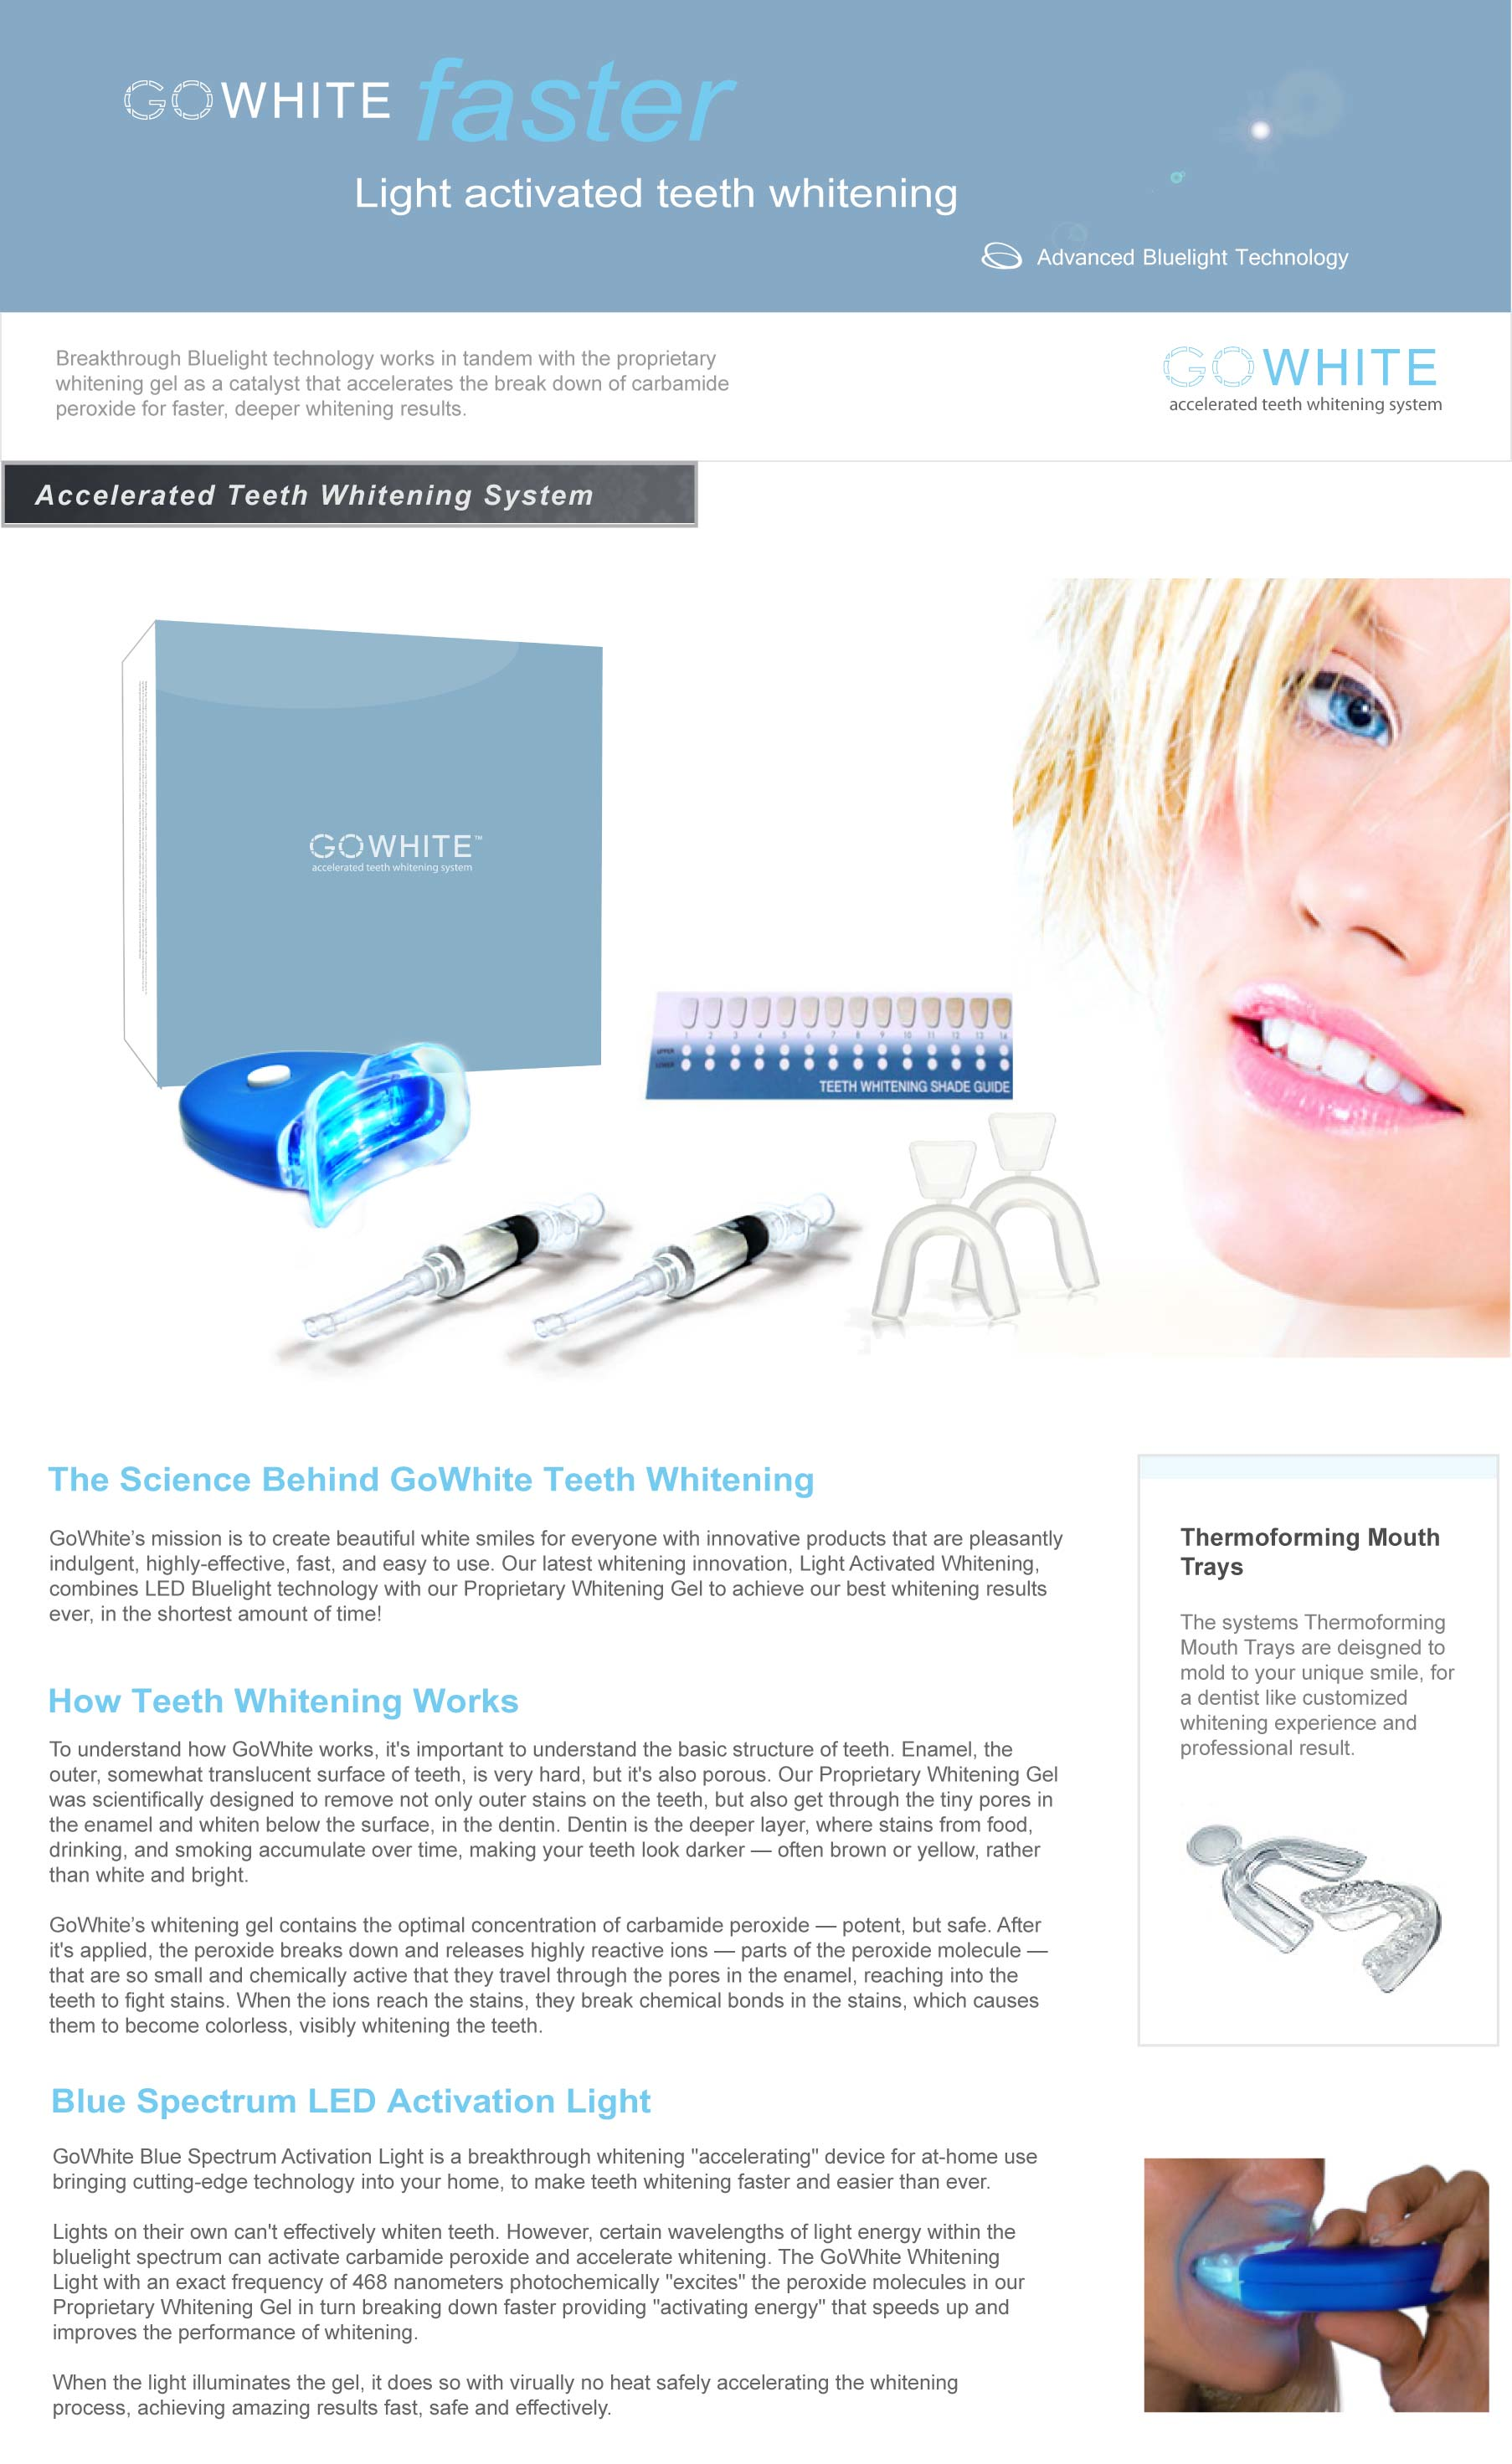 GoWhite Accelerated Teeth Whitening